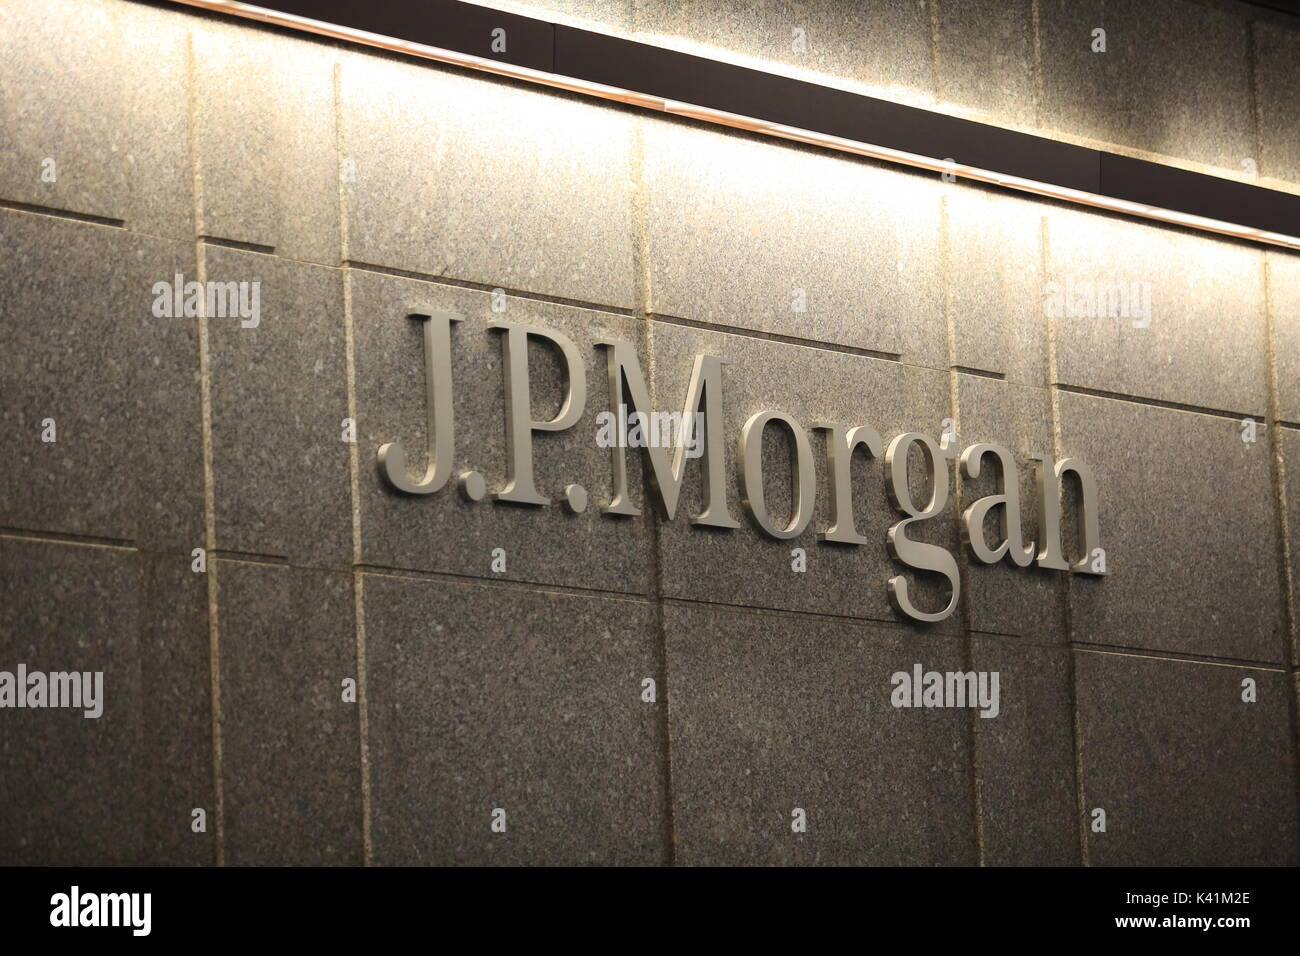 jp morgan headquarter office in new york Stock Photo